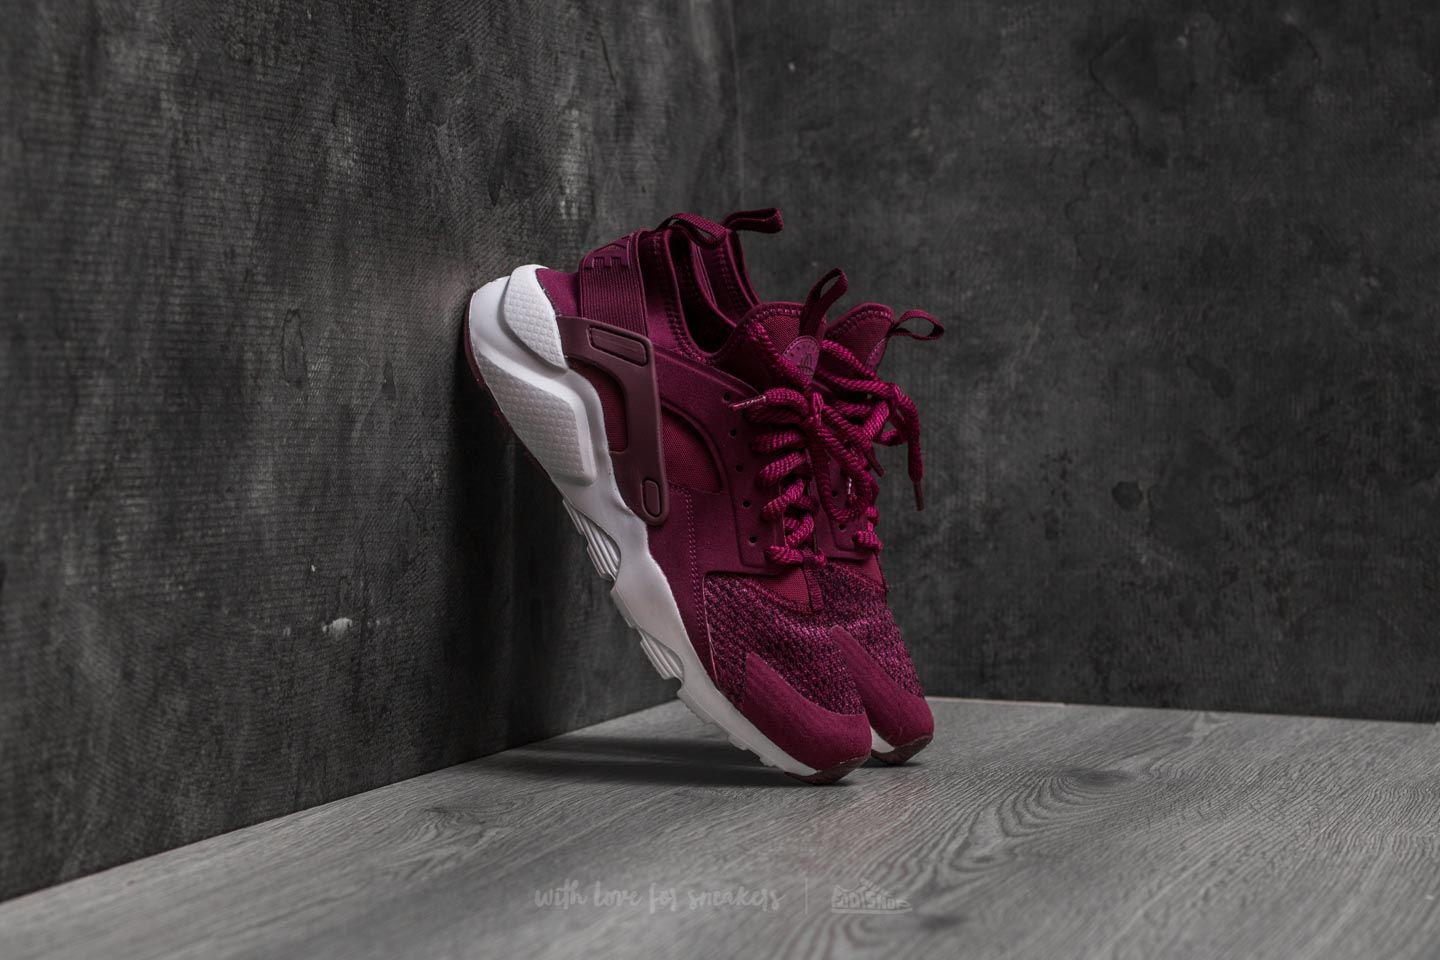 691795bd4e37e Lyst - Nike Air Huarache Run Ultra Se (gs) Bordeaux  Bordeaux-tea Berry